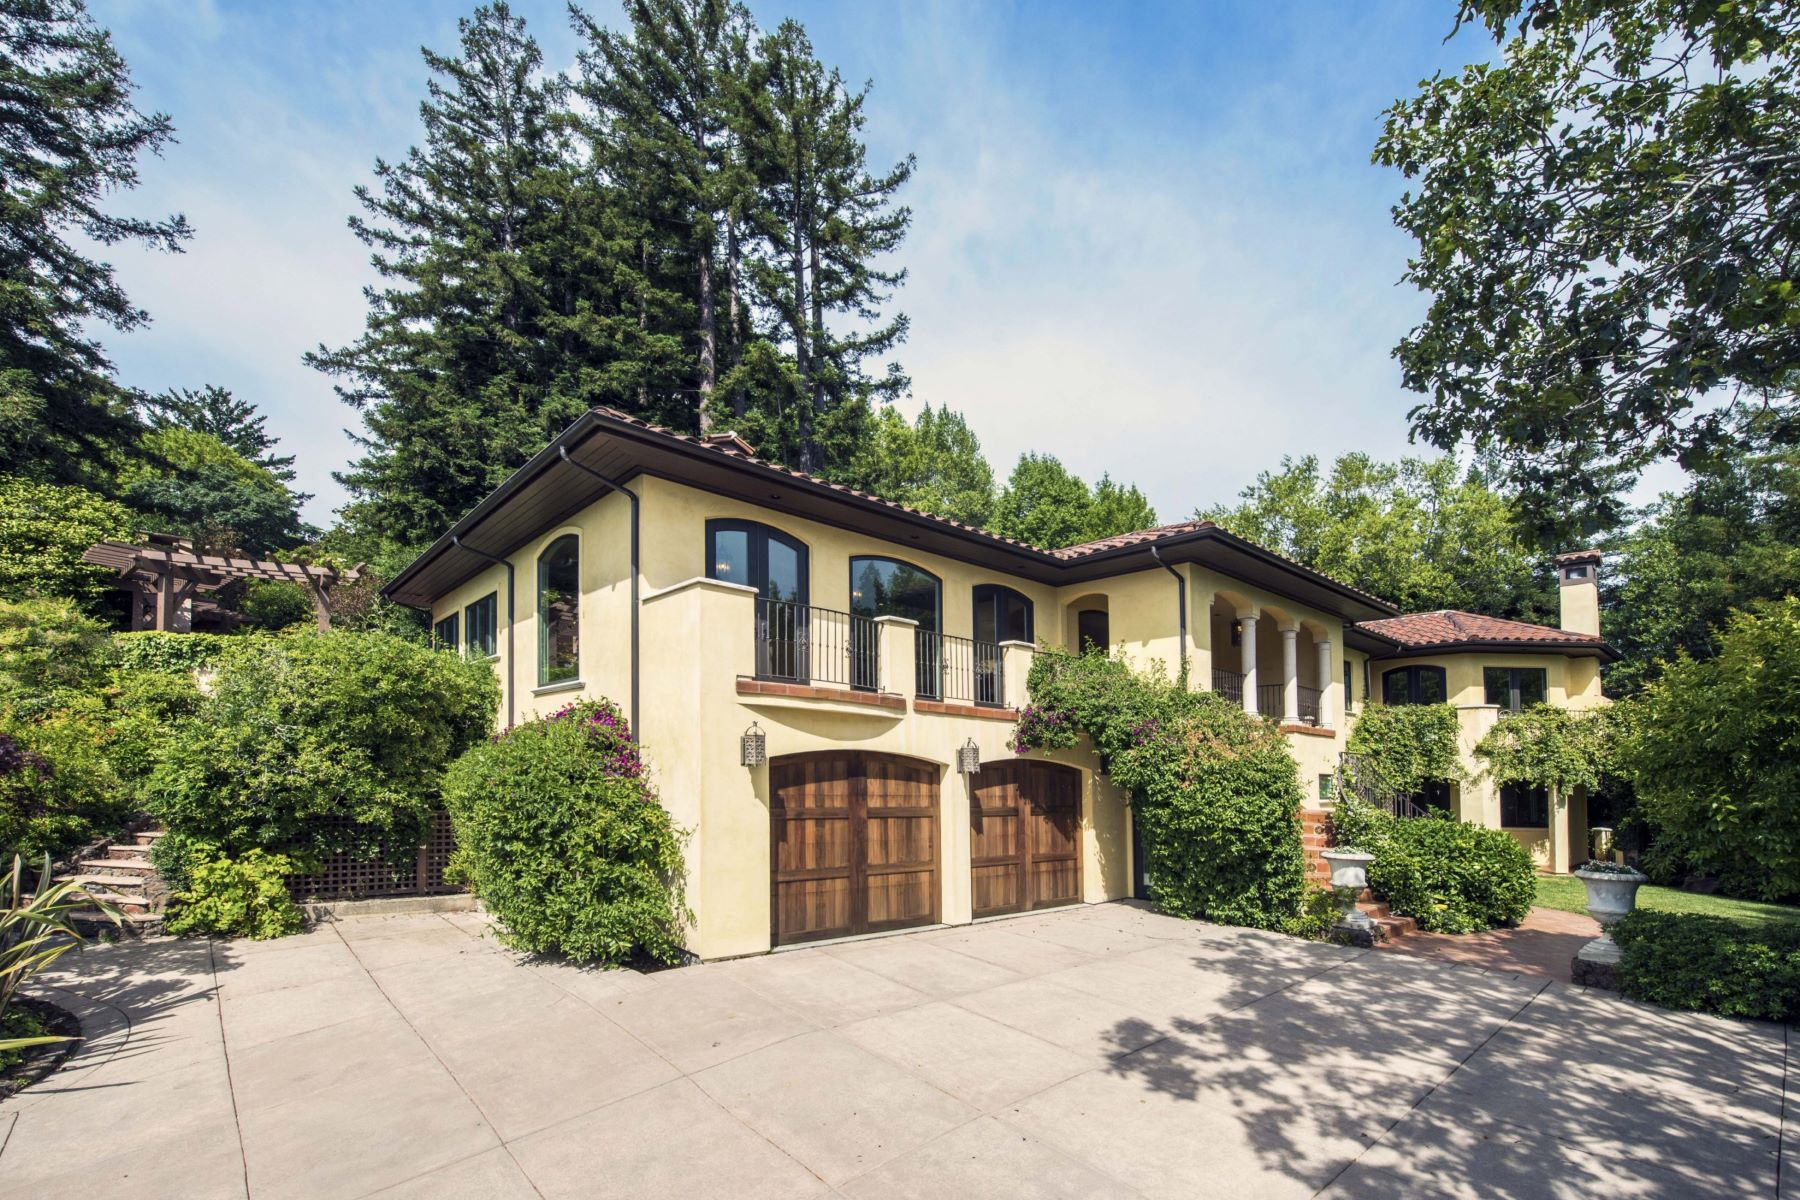 Single Family Home for Sale at Impeccable Kent Woodlands Mediterranean 14 Madrone Way Kentfield, California 94904 United States